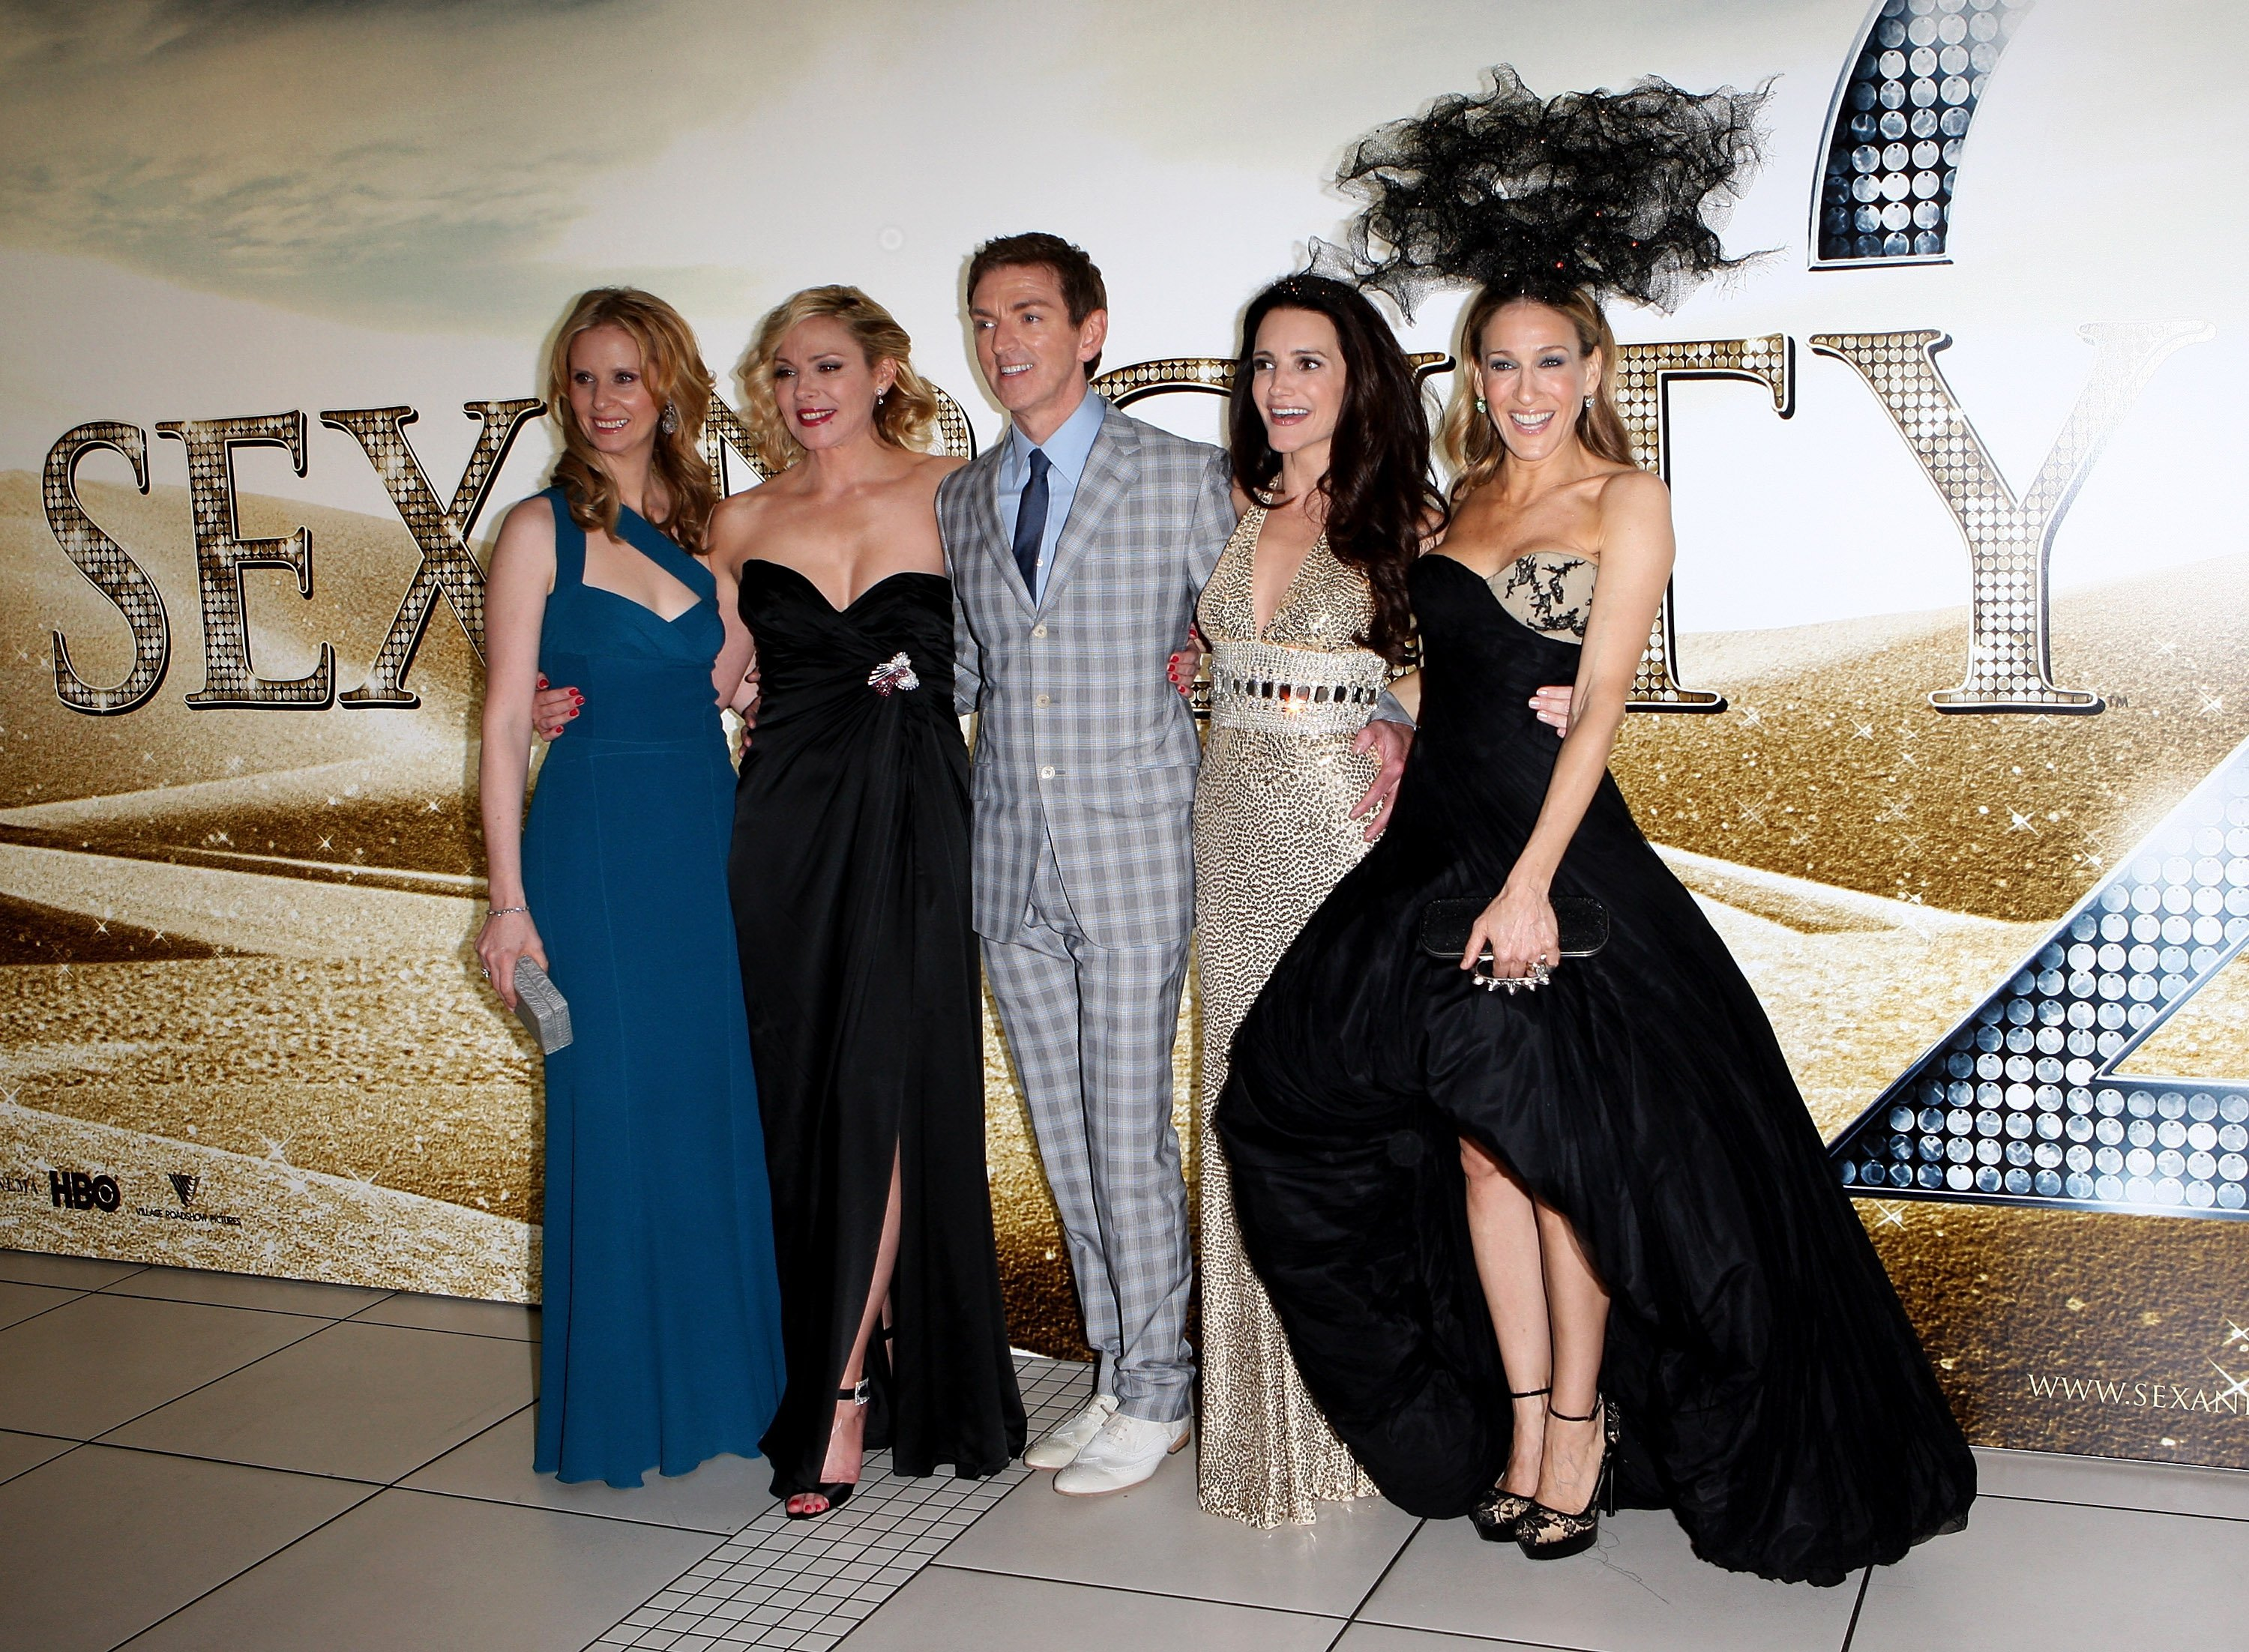 Producer Michael Patrick King (C) and actresses (from L) Cynthia Nixon, Kim Cattrall, Kristin Davis and Sarah Jessica Parker arrive at the UK premiere of 'Sex And The City 2' at Odeon Leicester Square on May 27, 2010, in London, England. | Source: Getty Images.